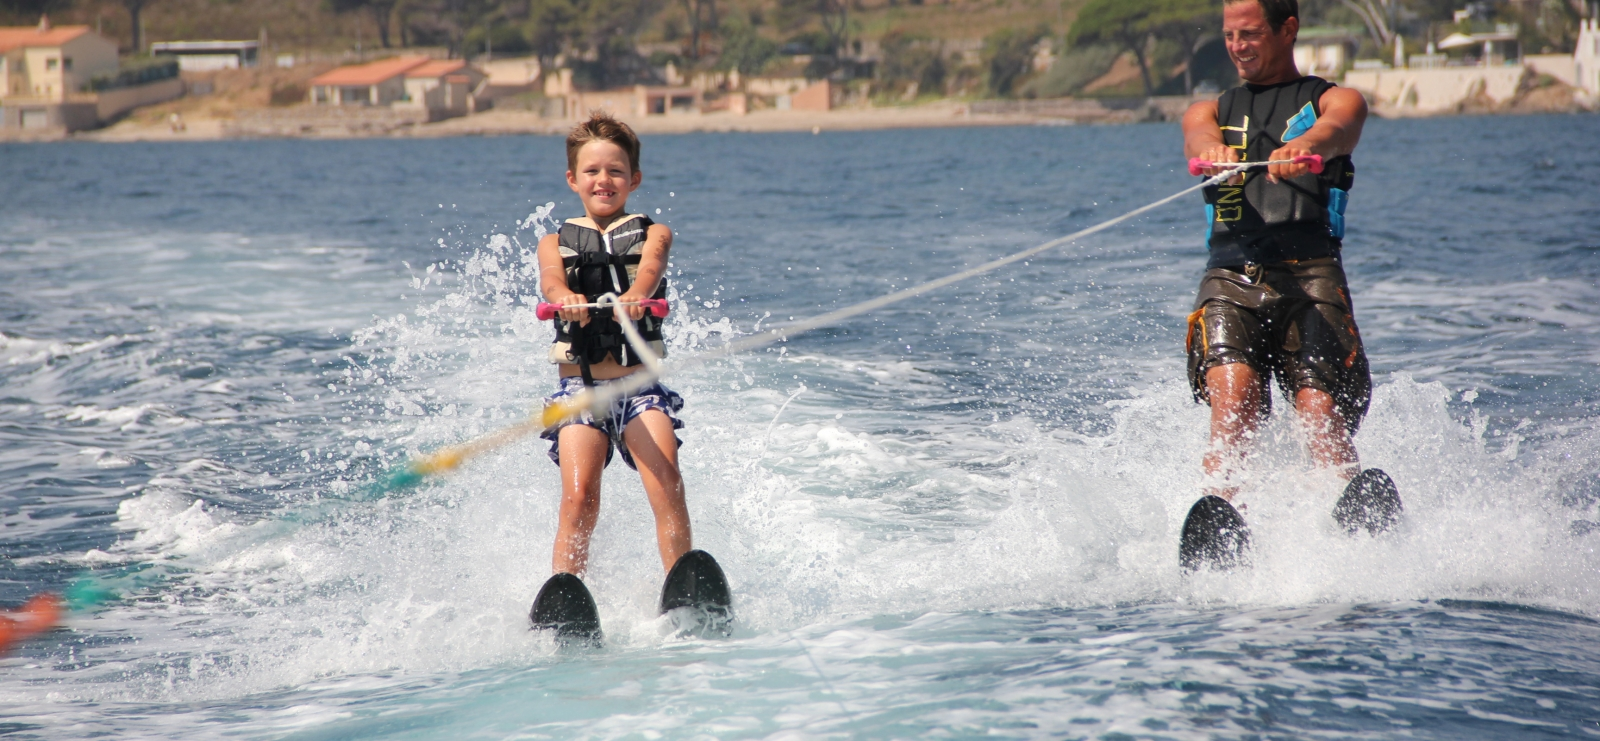 Ski Nautique/ wakeboard sur mer - Les Issambres